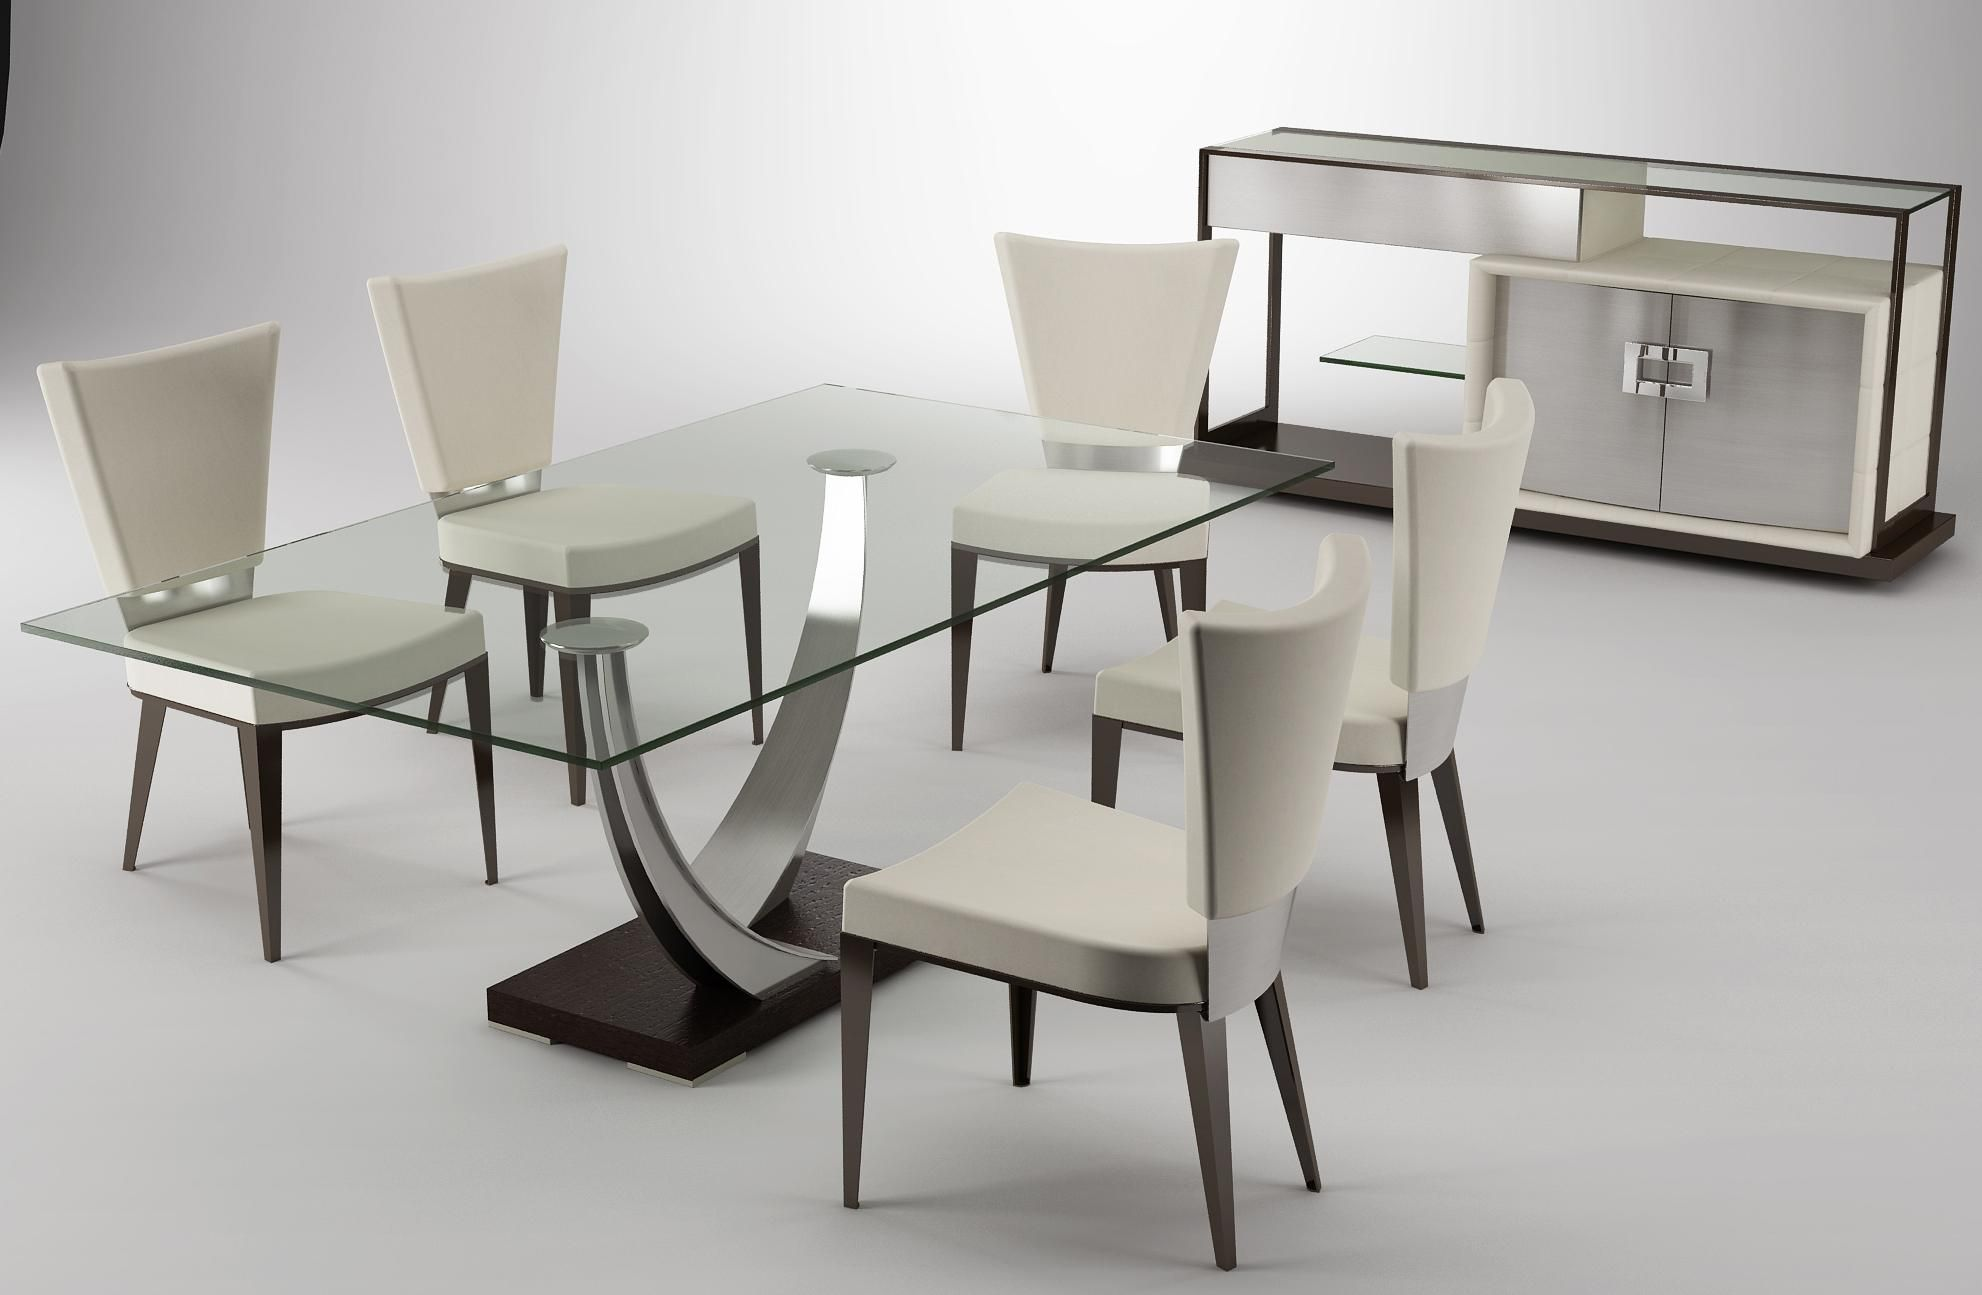 Amazing Modern Stylish Dining Room Table Set Designs Elite Tangent Glass  Top Furniture Stores With Tables Awesome Ideas